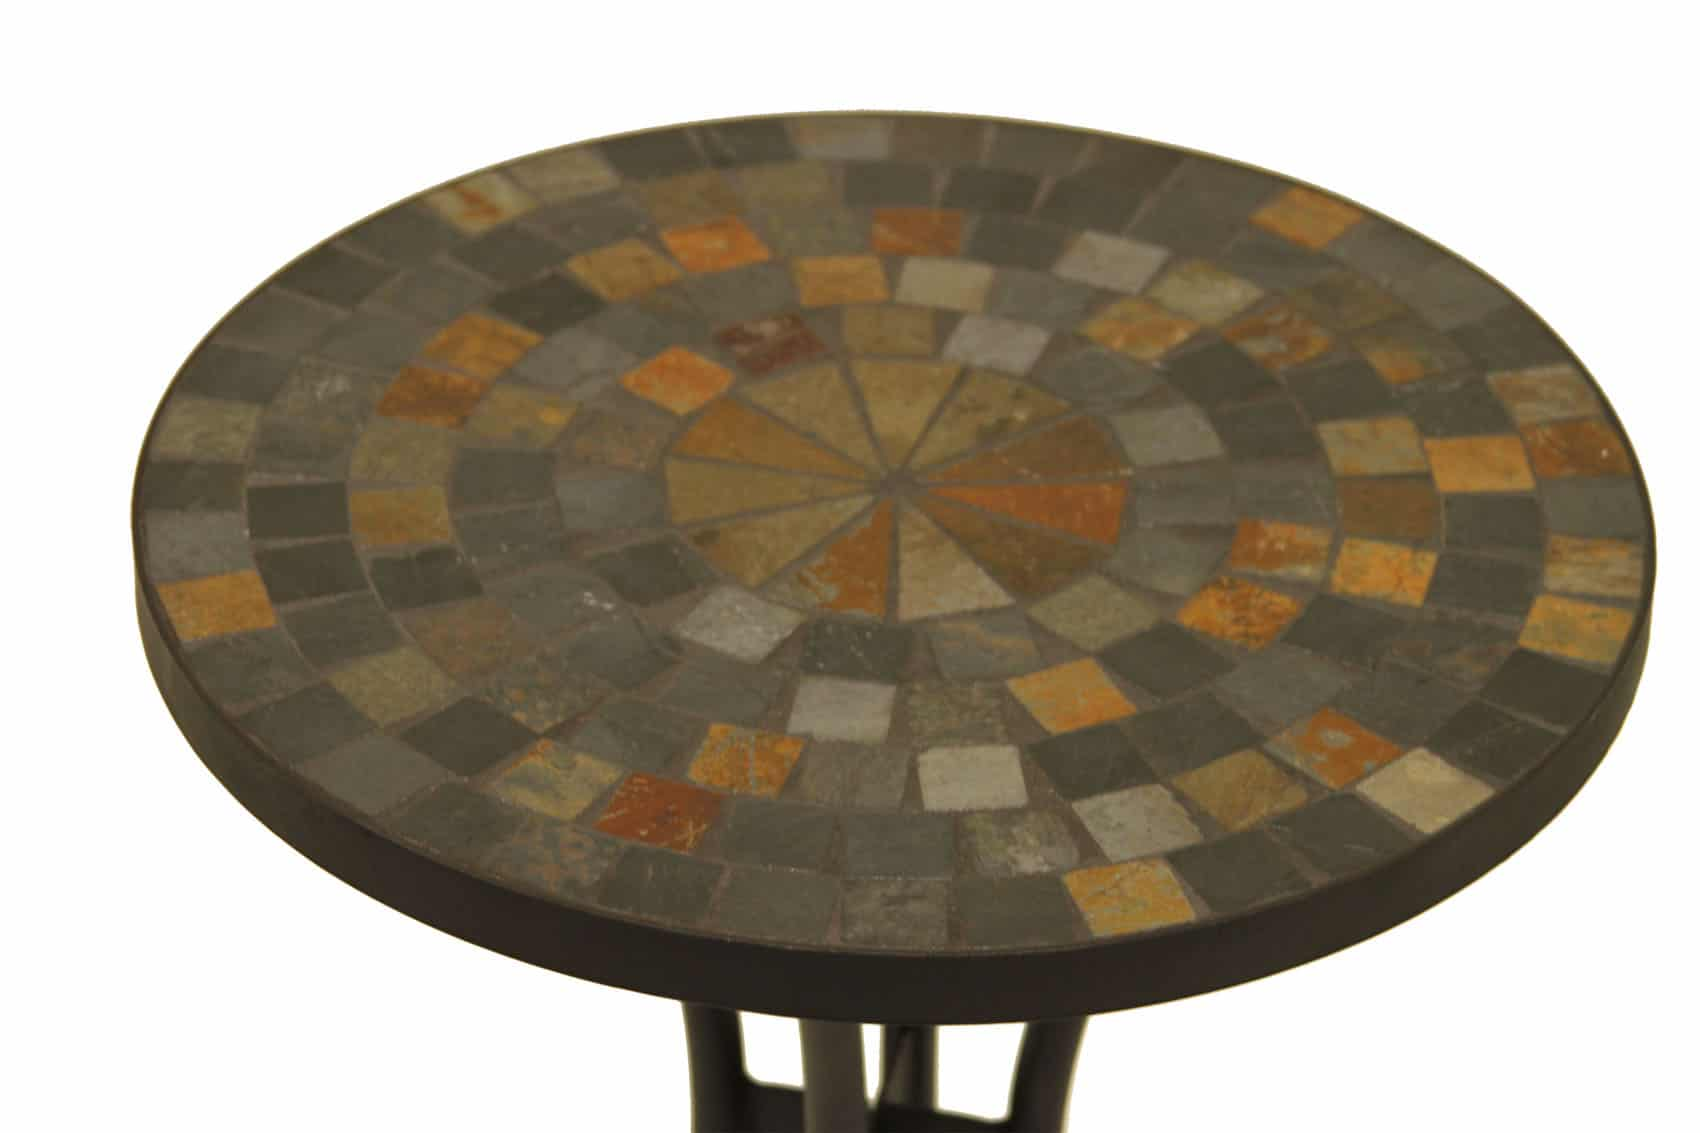 slate mosaic accent table for decks patios and gardens cobble stone top only outdoor wrought iron bistro set metal folding butler furniture tables screw sofa legs floor lamp